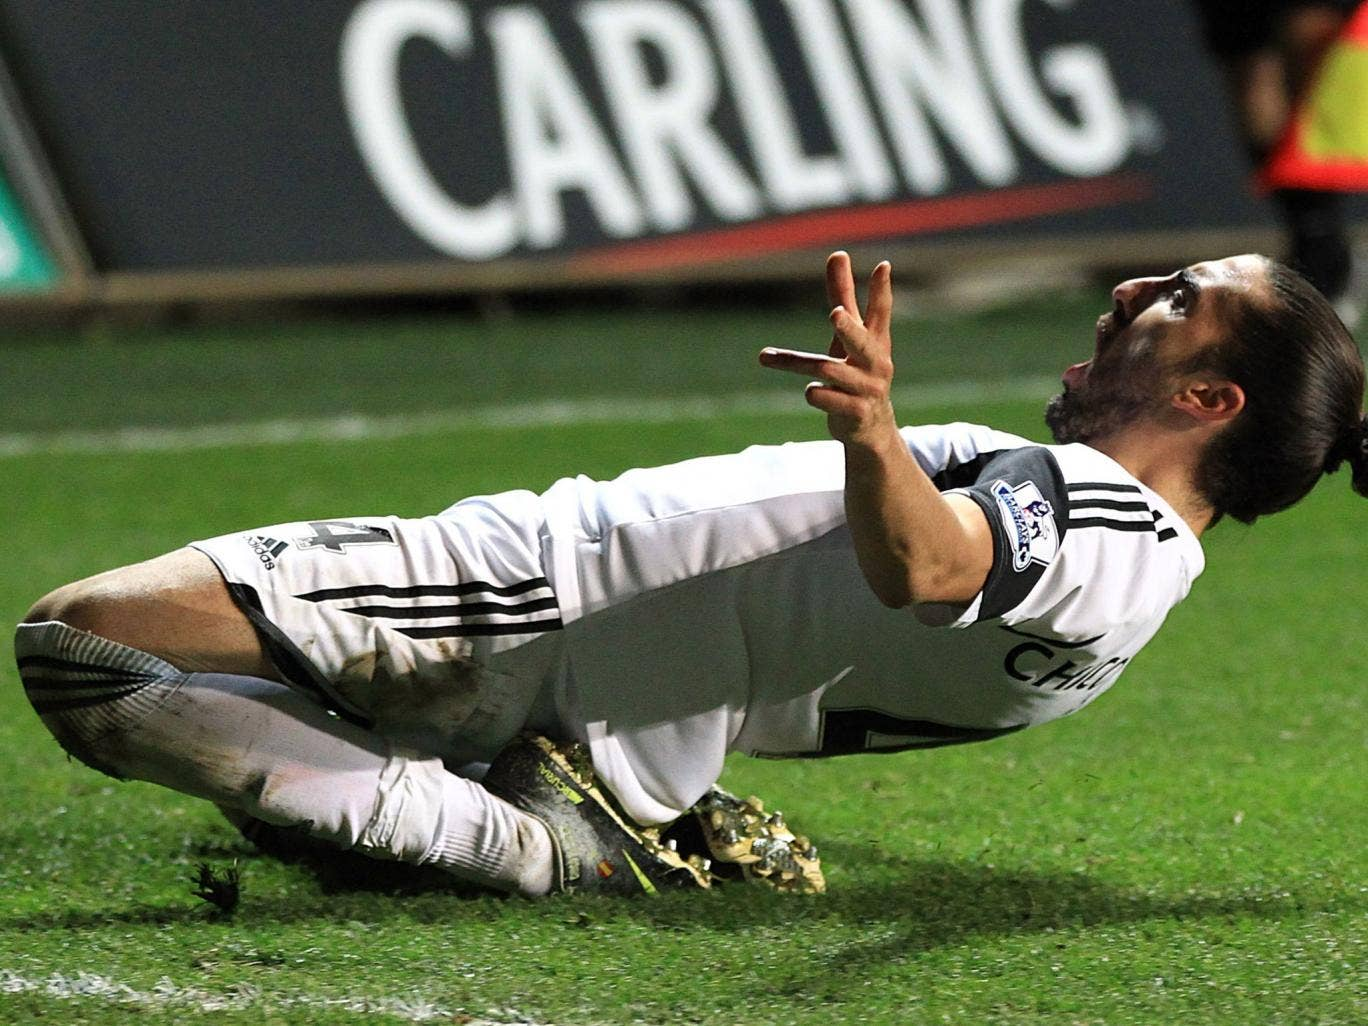 Chico celebrates after scoring his team's opening goal